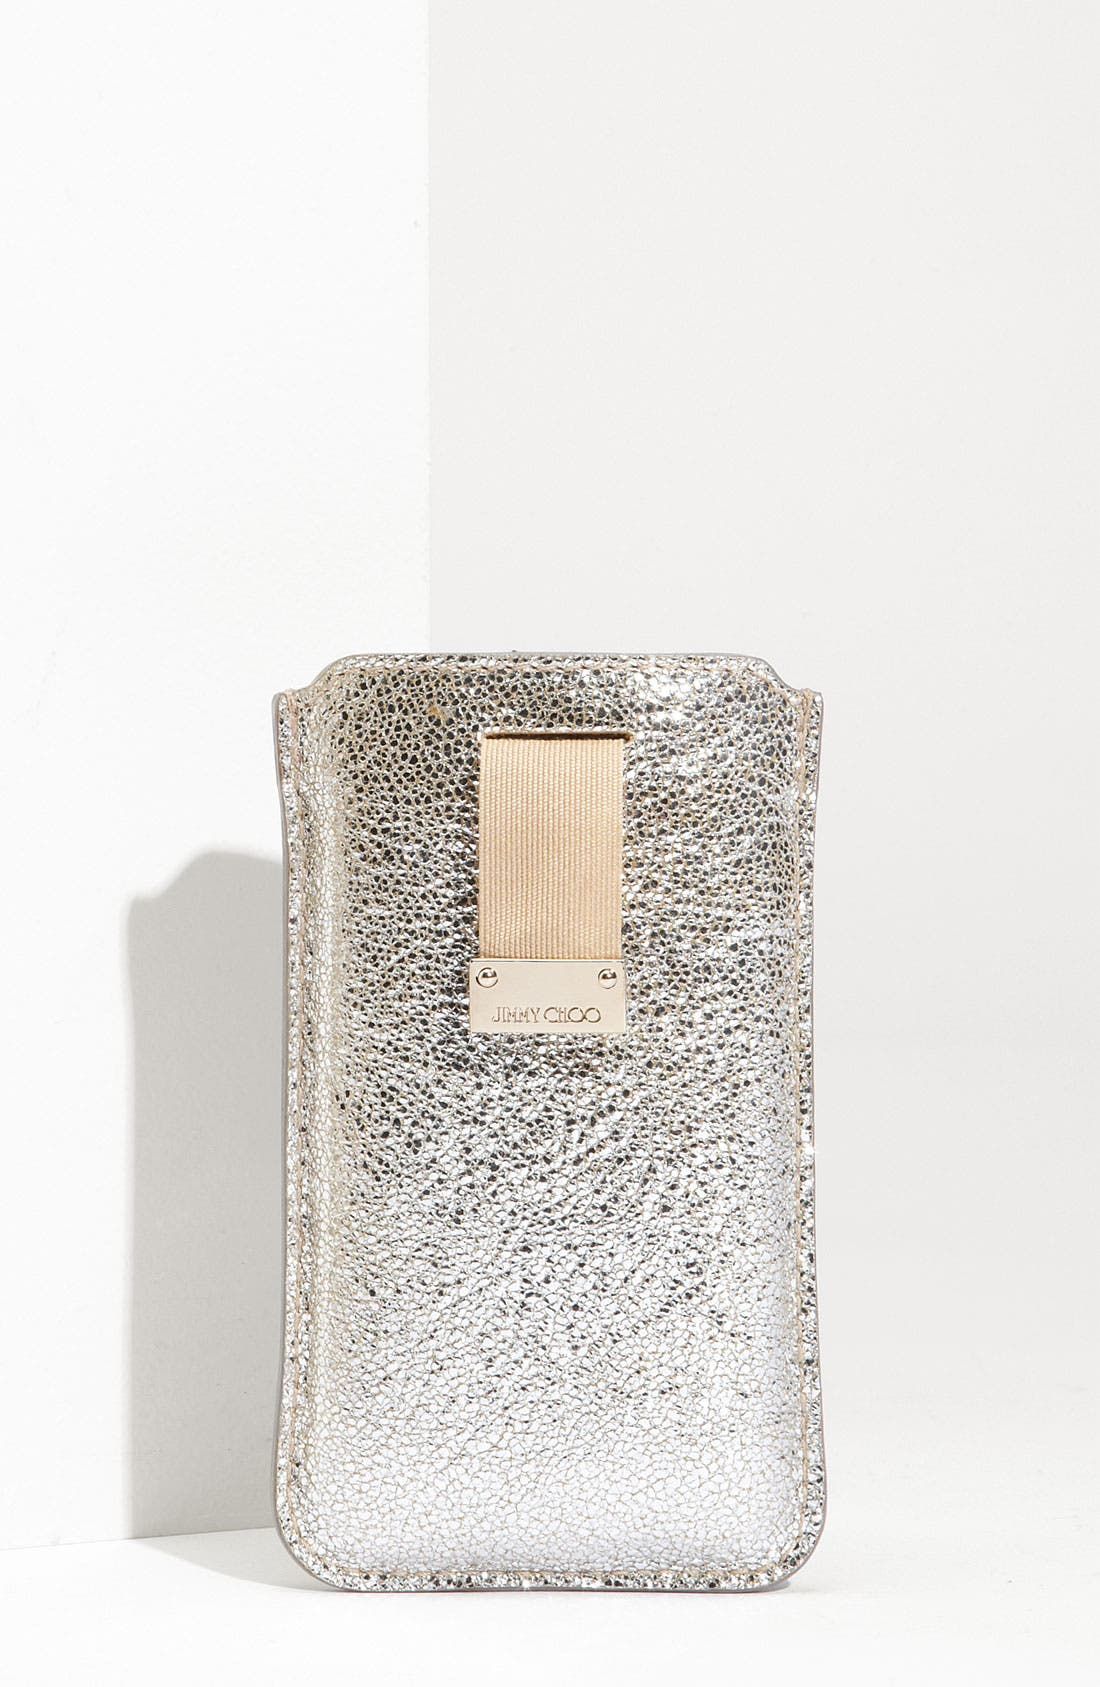 Main Image - Jimmy Choo 'Trent' Leather iPhone Case